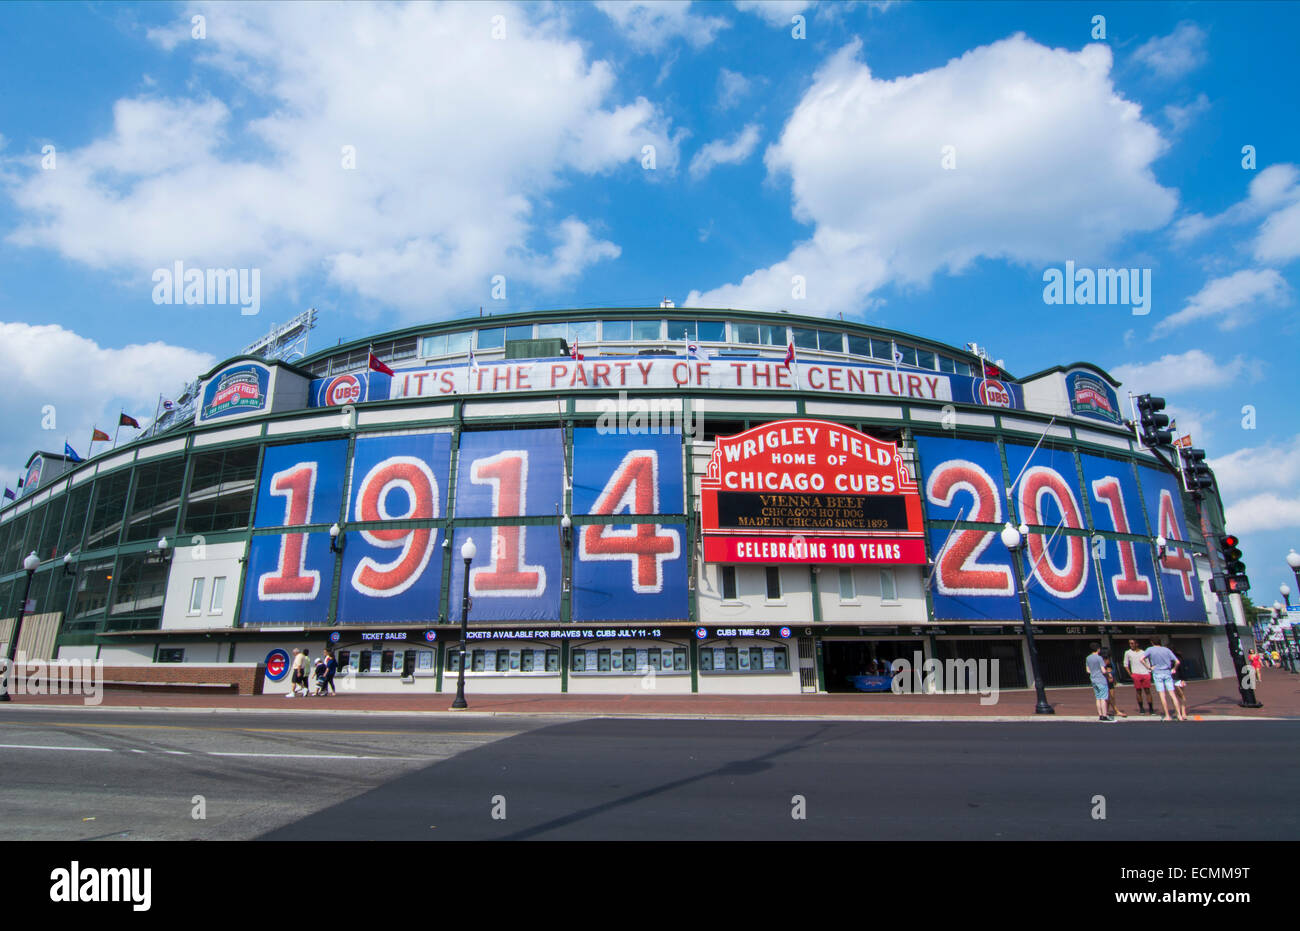 Chicago Illinois famous Wrigley Field for Major League Baseball team of Chicago Cubs built in 1914 - Stock Image